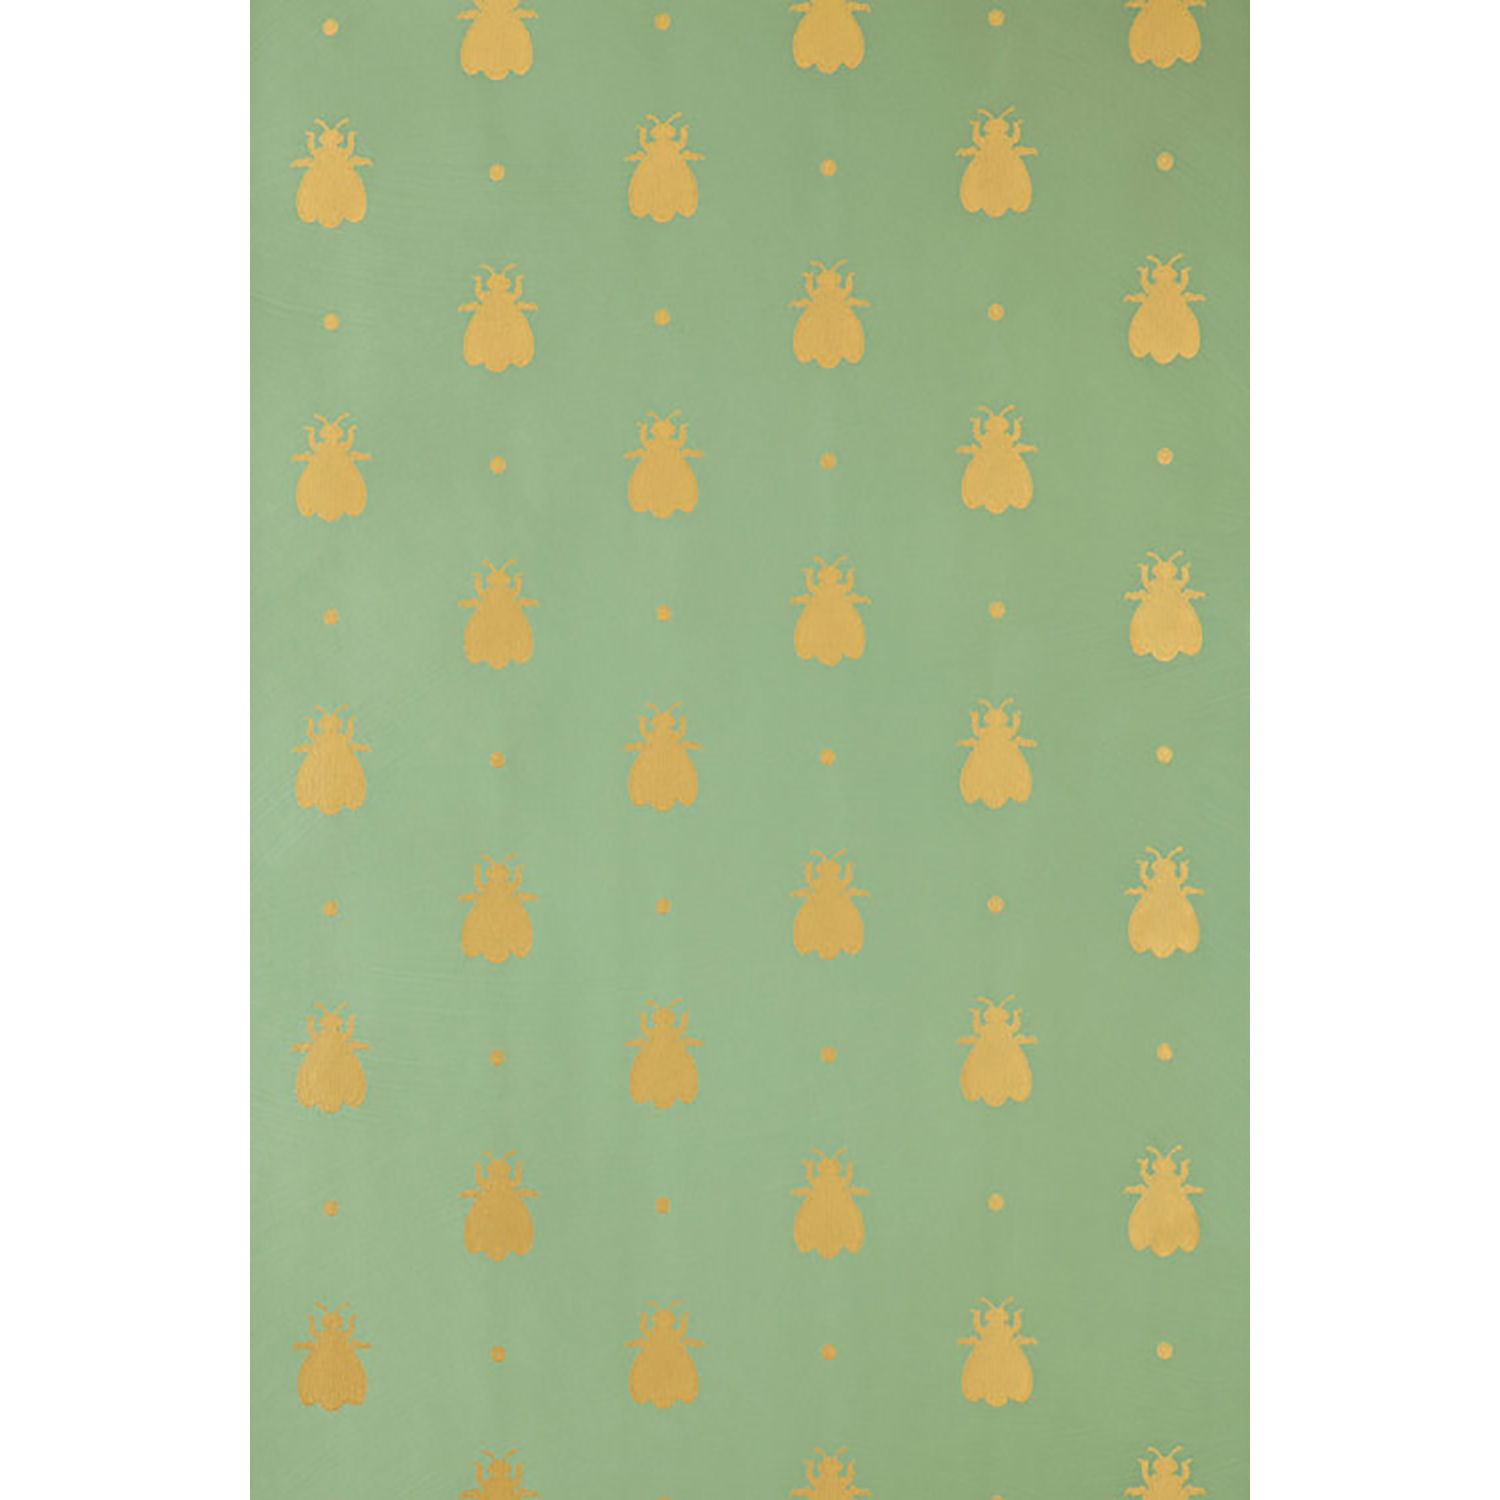 Image of Farrow And Ball Bumble Bee Wallpaper 5-47, Green/ Gold